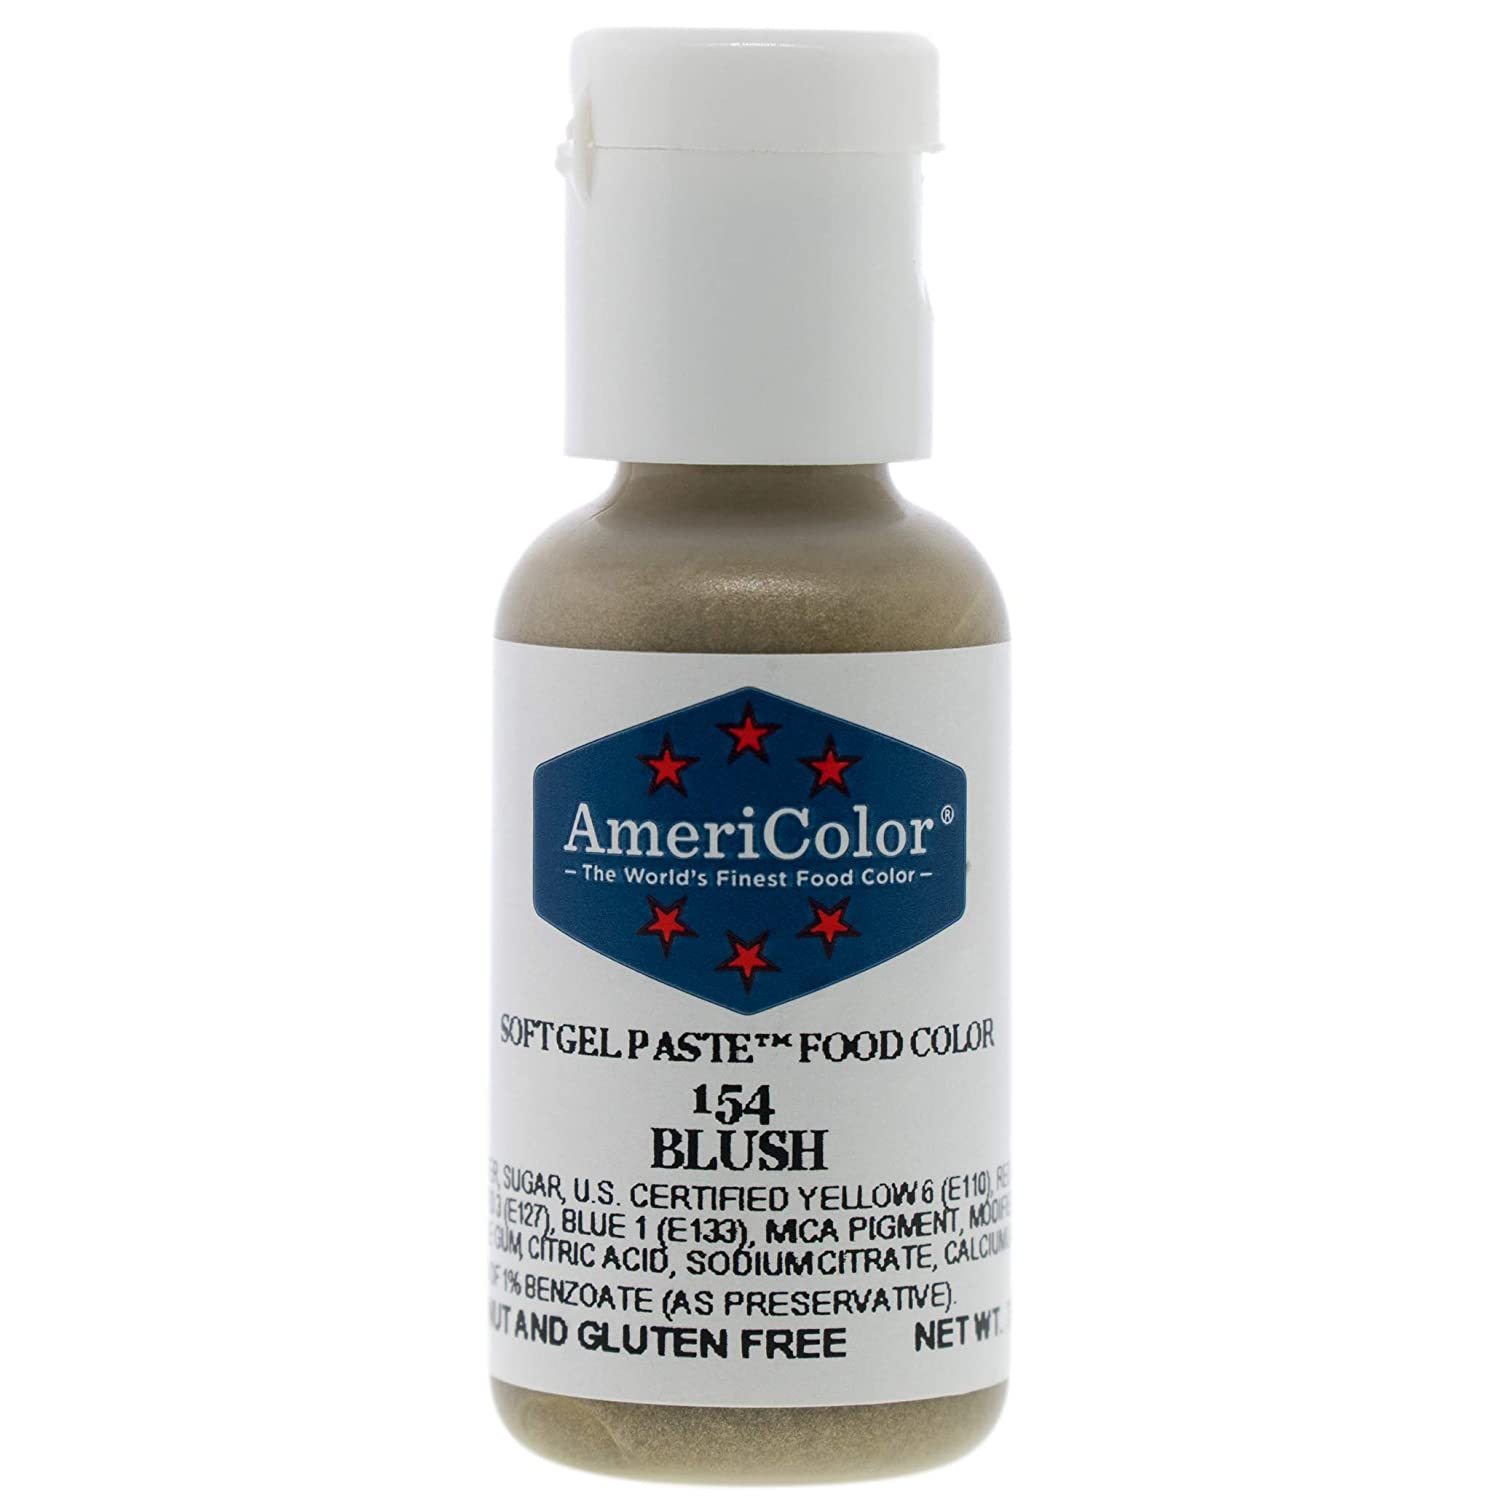 Food Coloring AmeriColor Blush Soft Gel Paste .75 Ounce